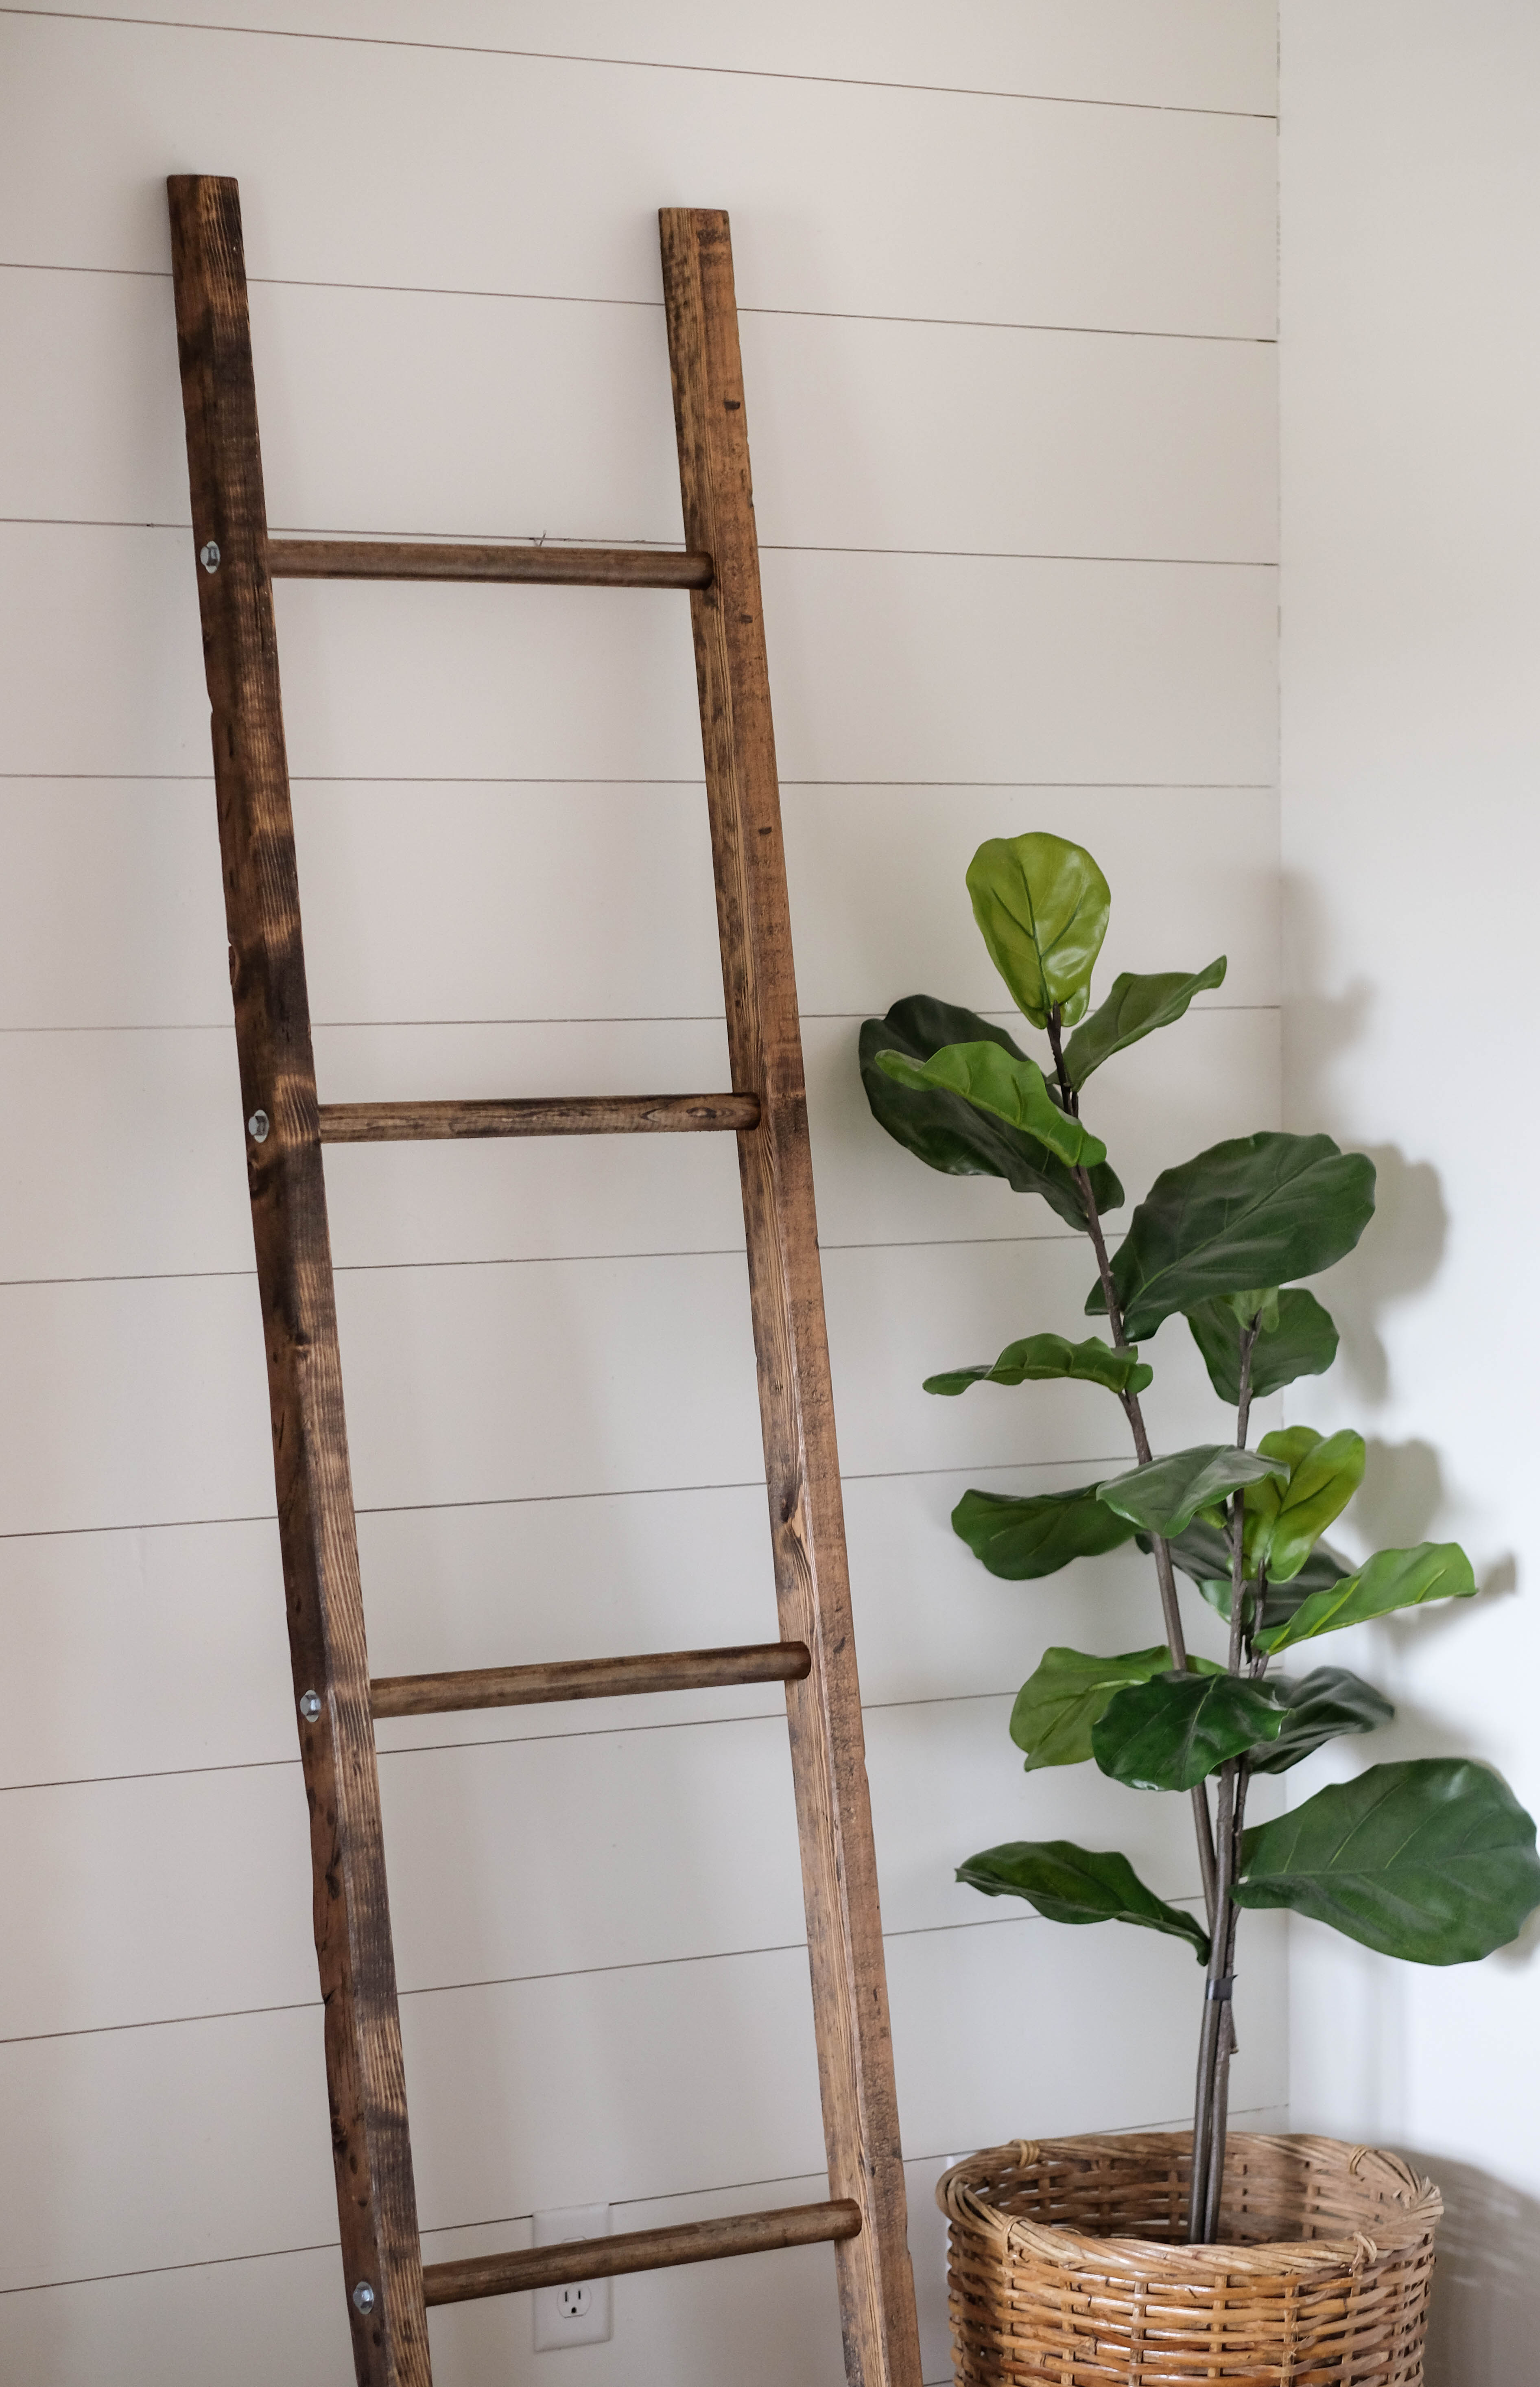 A walnut stained blanket ladder leaning against a white shiplap wall.